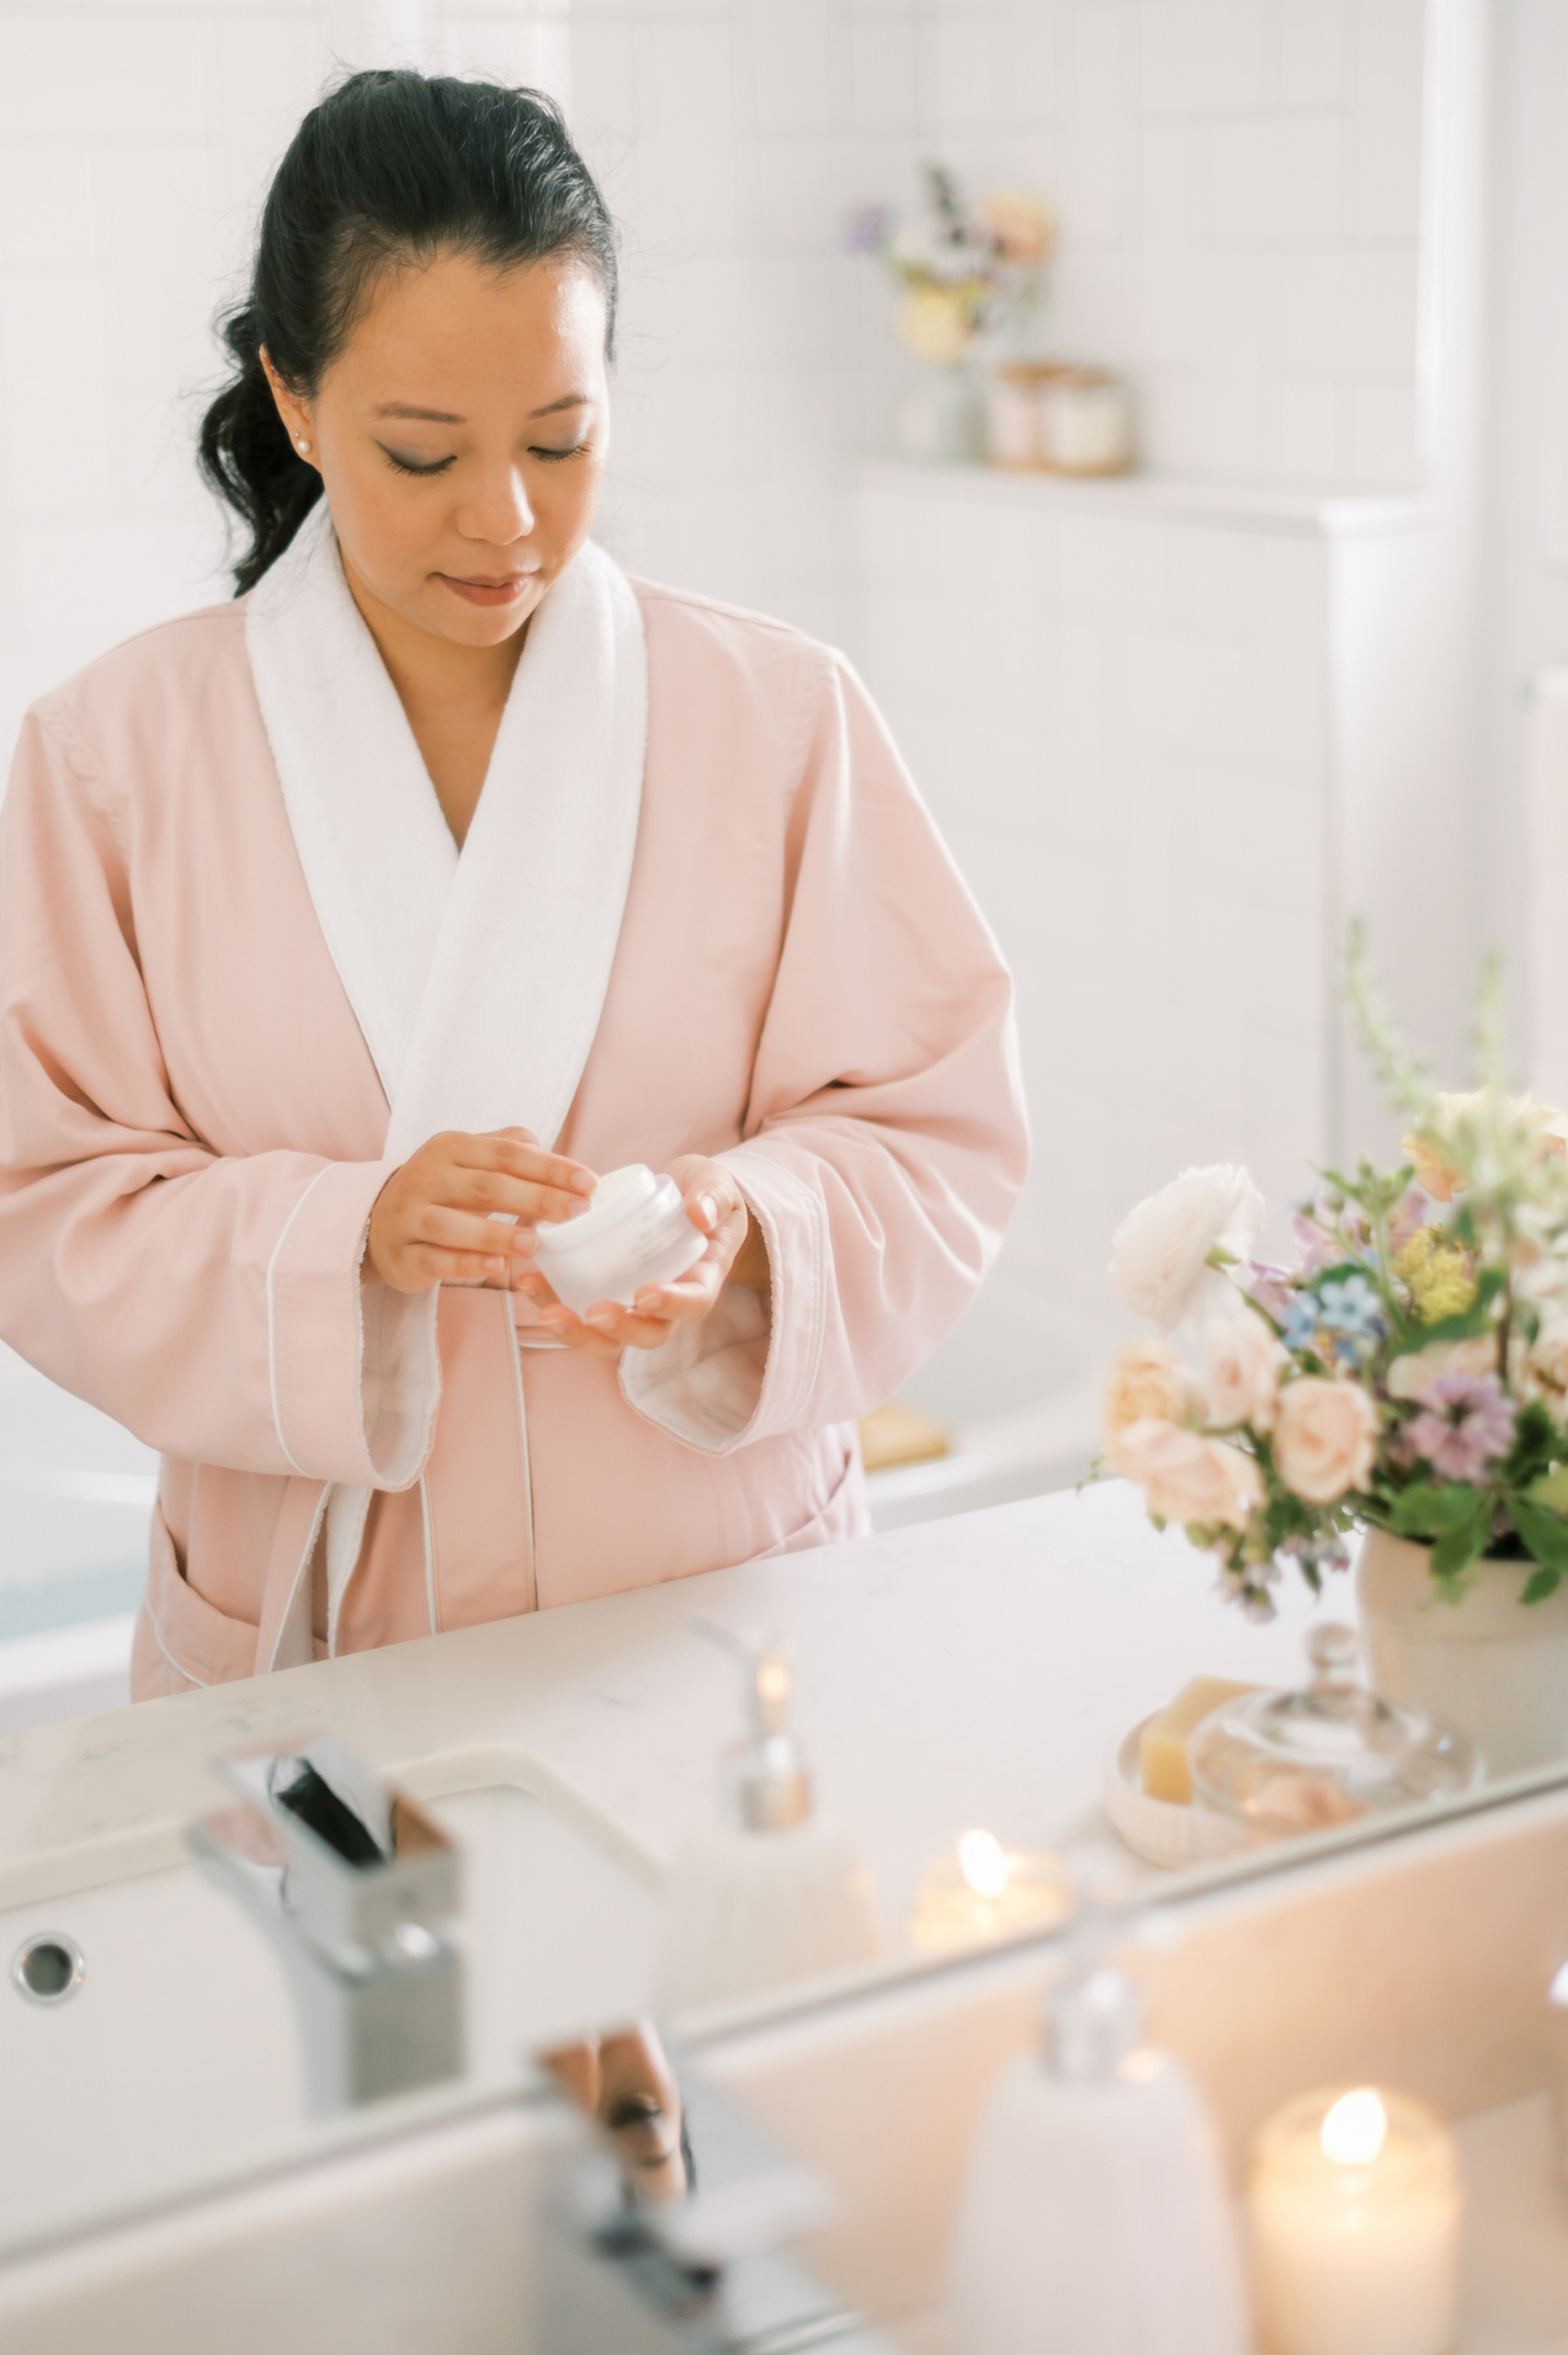 common menopause questions, Asian woman in pink robe applying cream